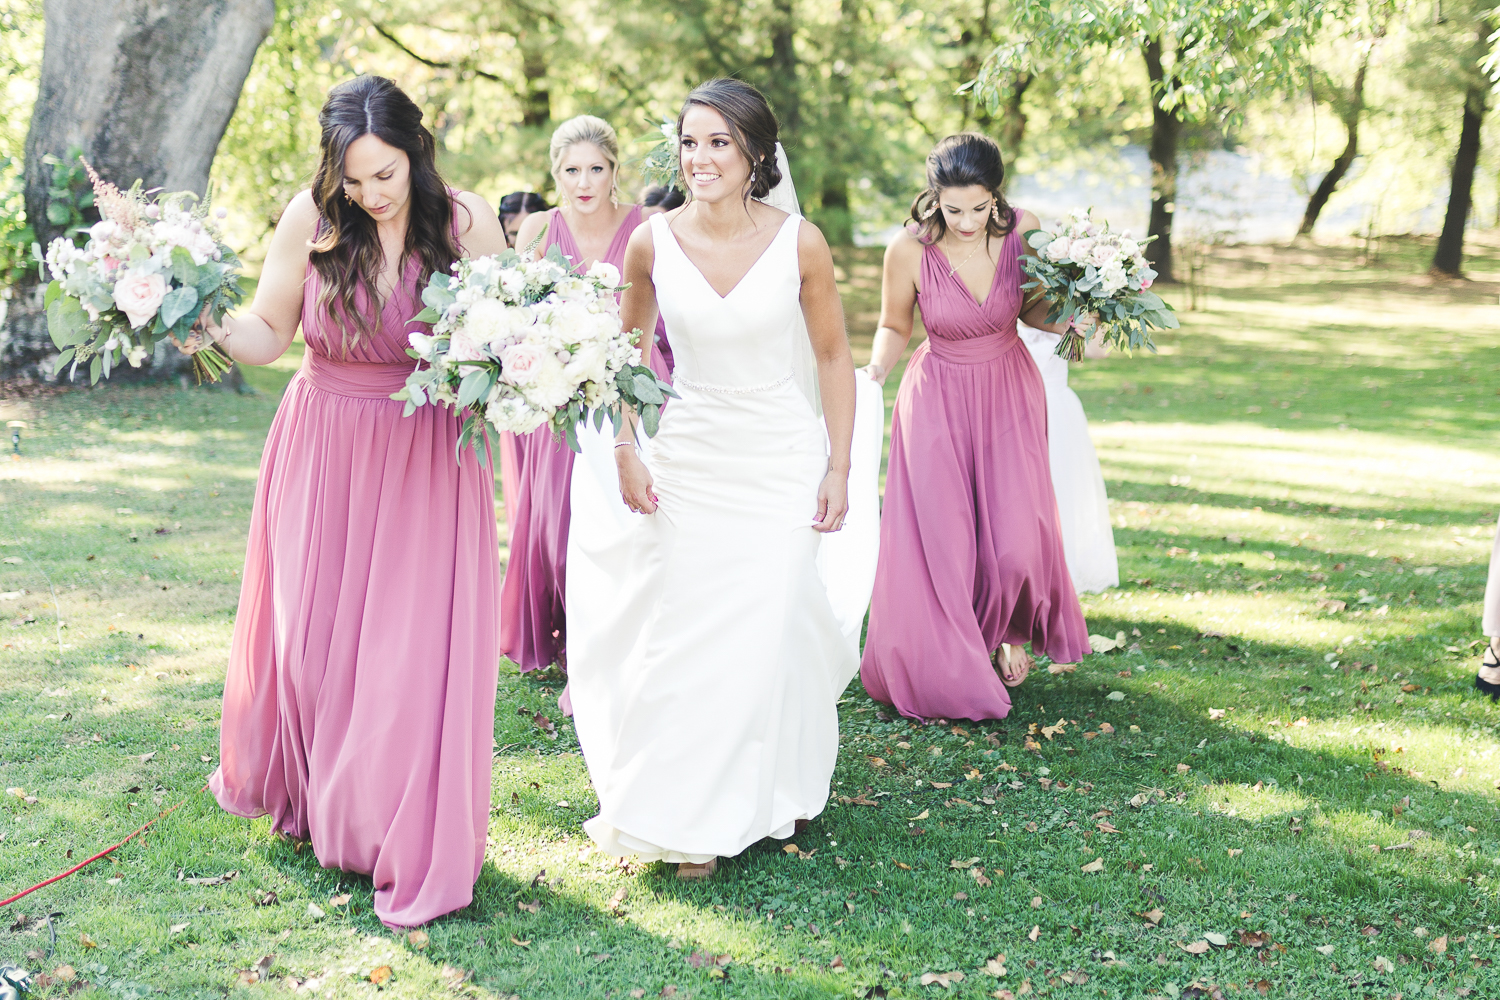 Bride and bridal party before the wedding